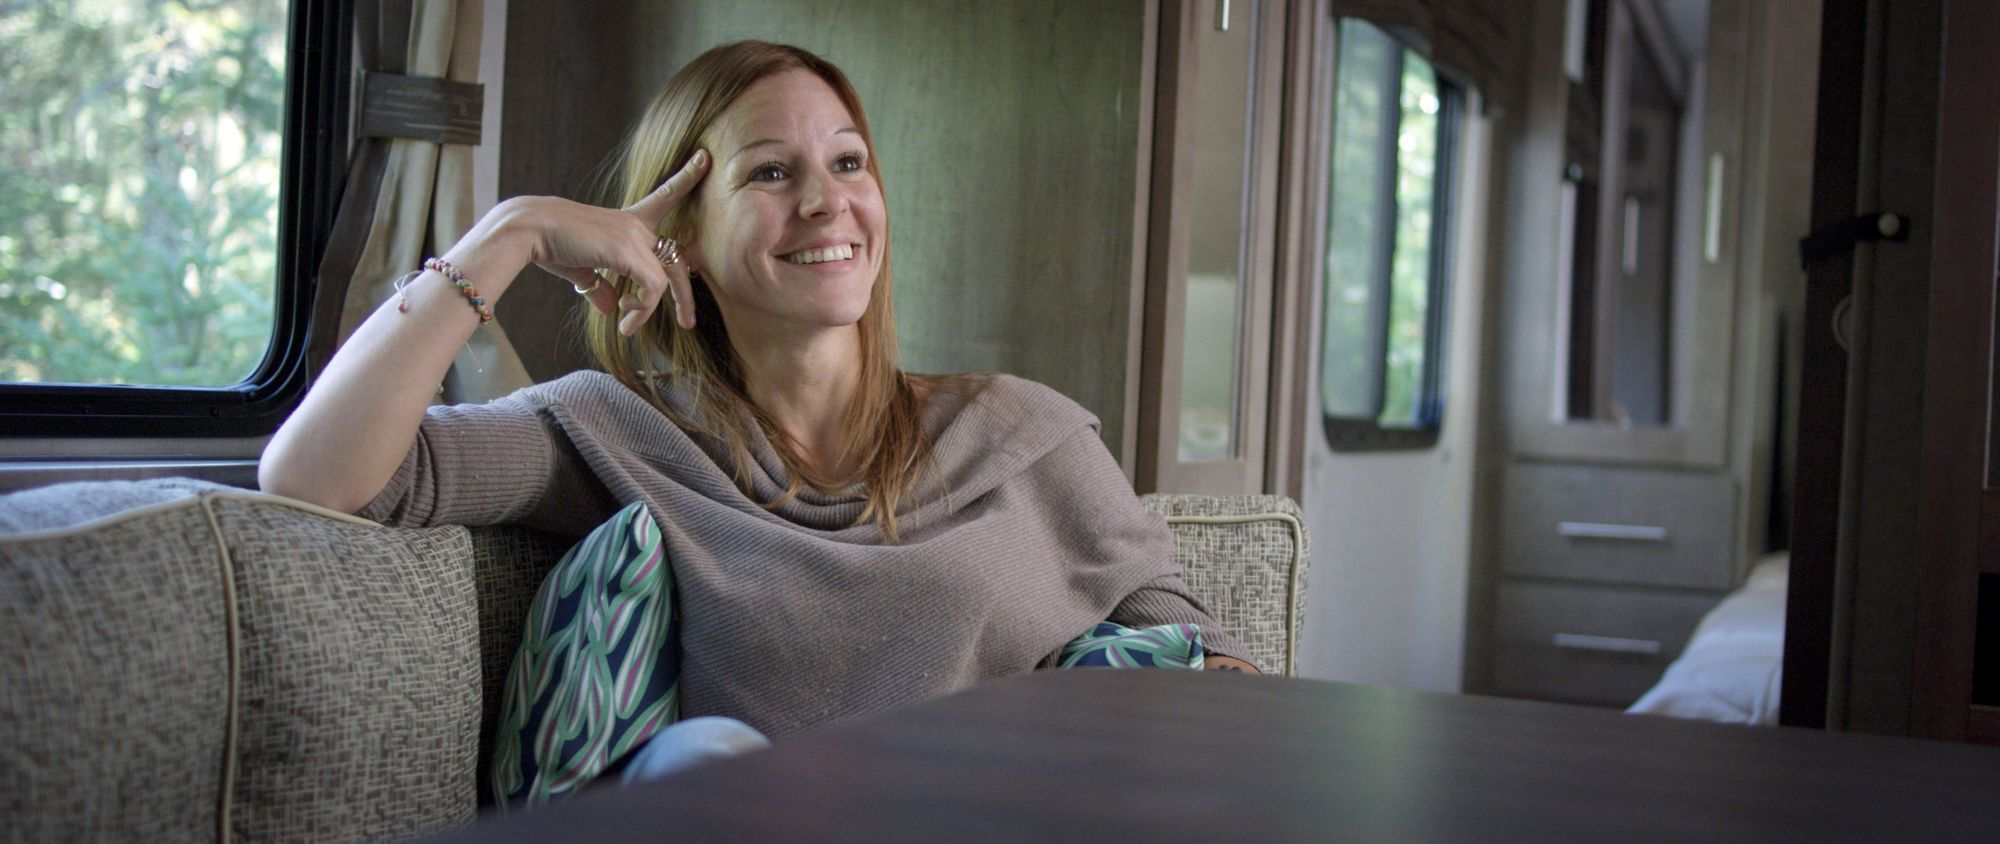 Top 10 Reasons To Travel Solo In An RV